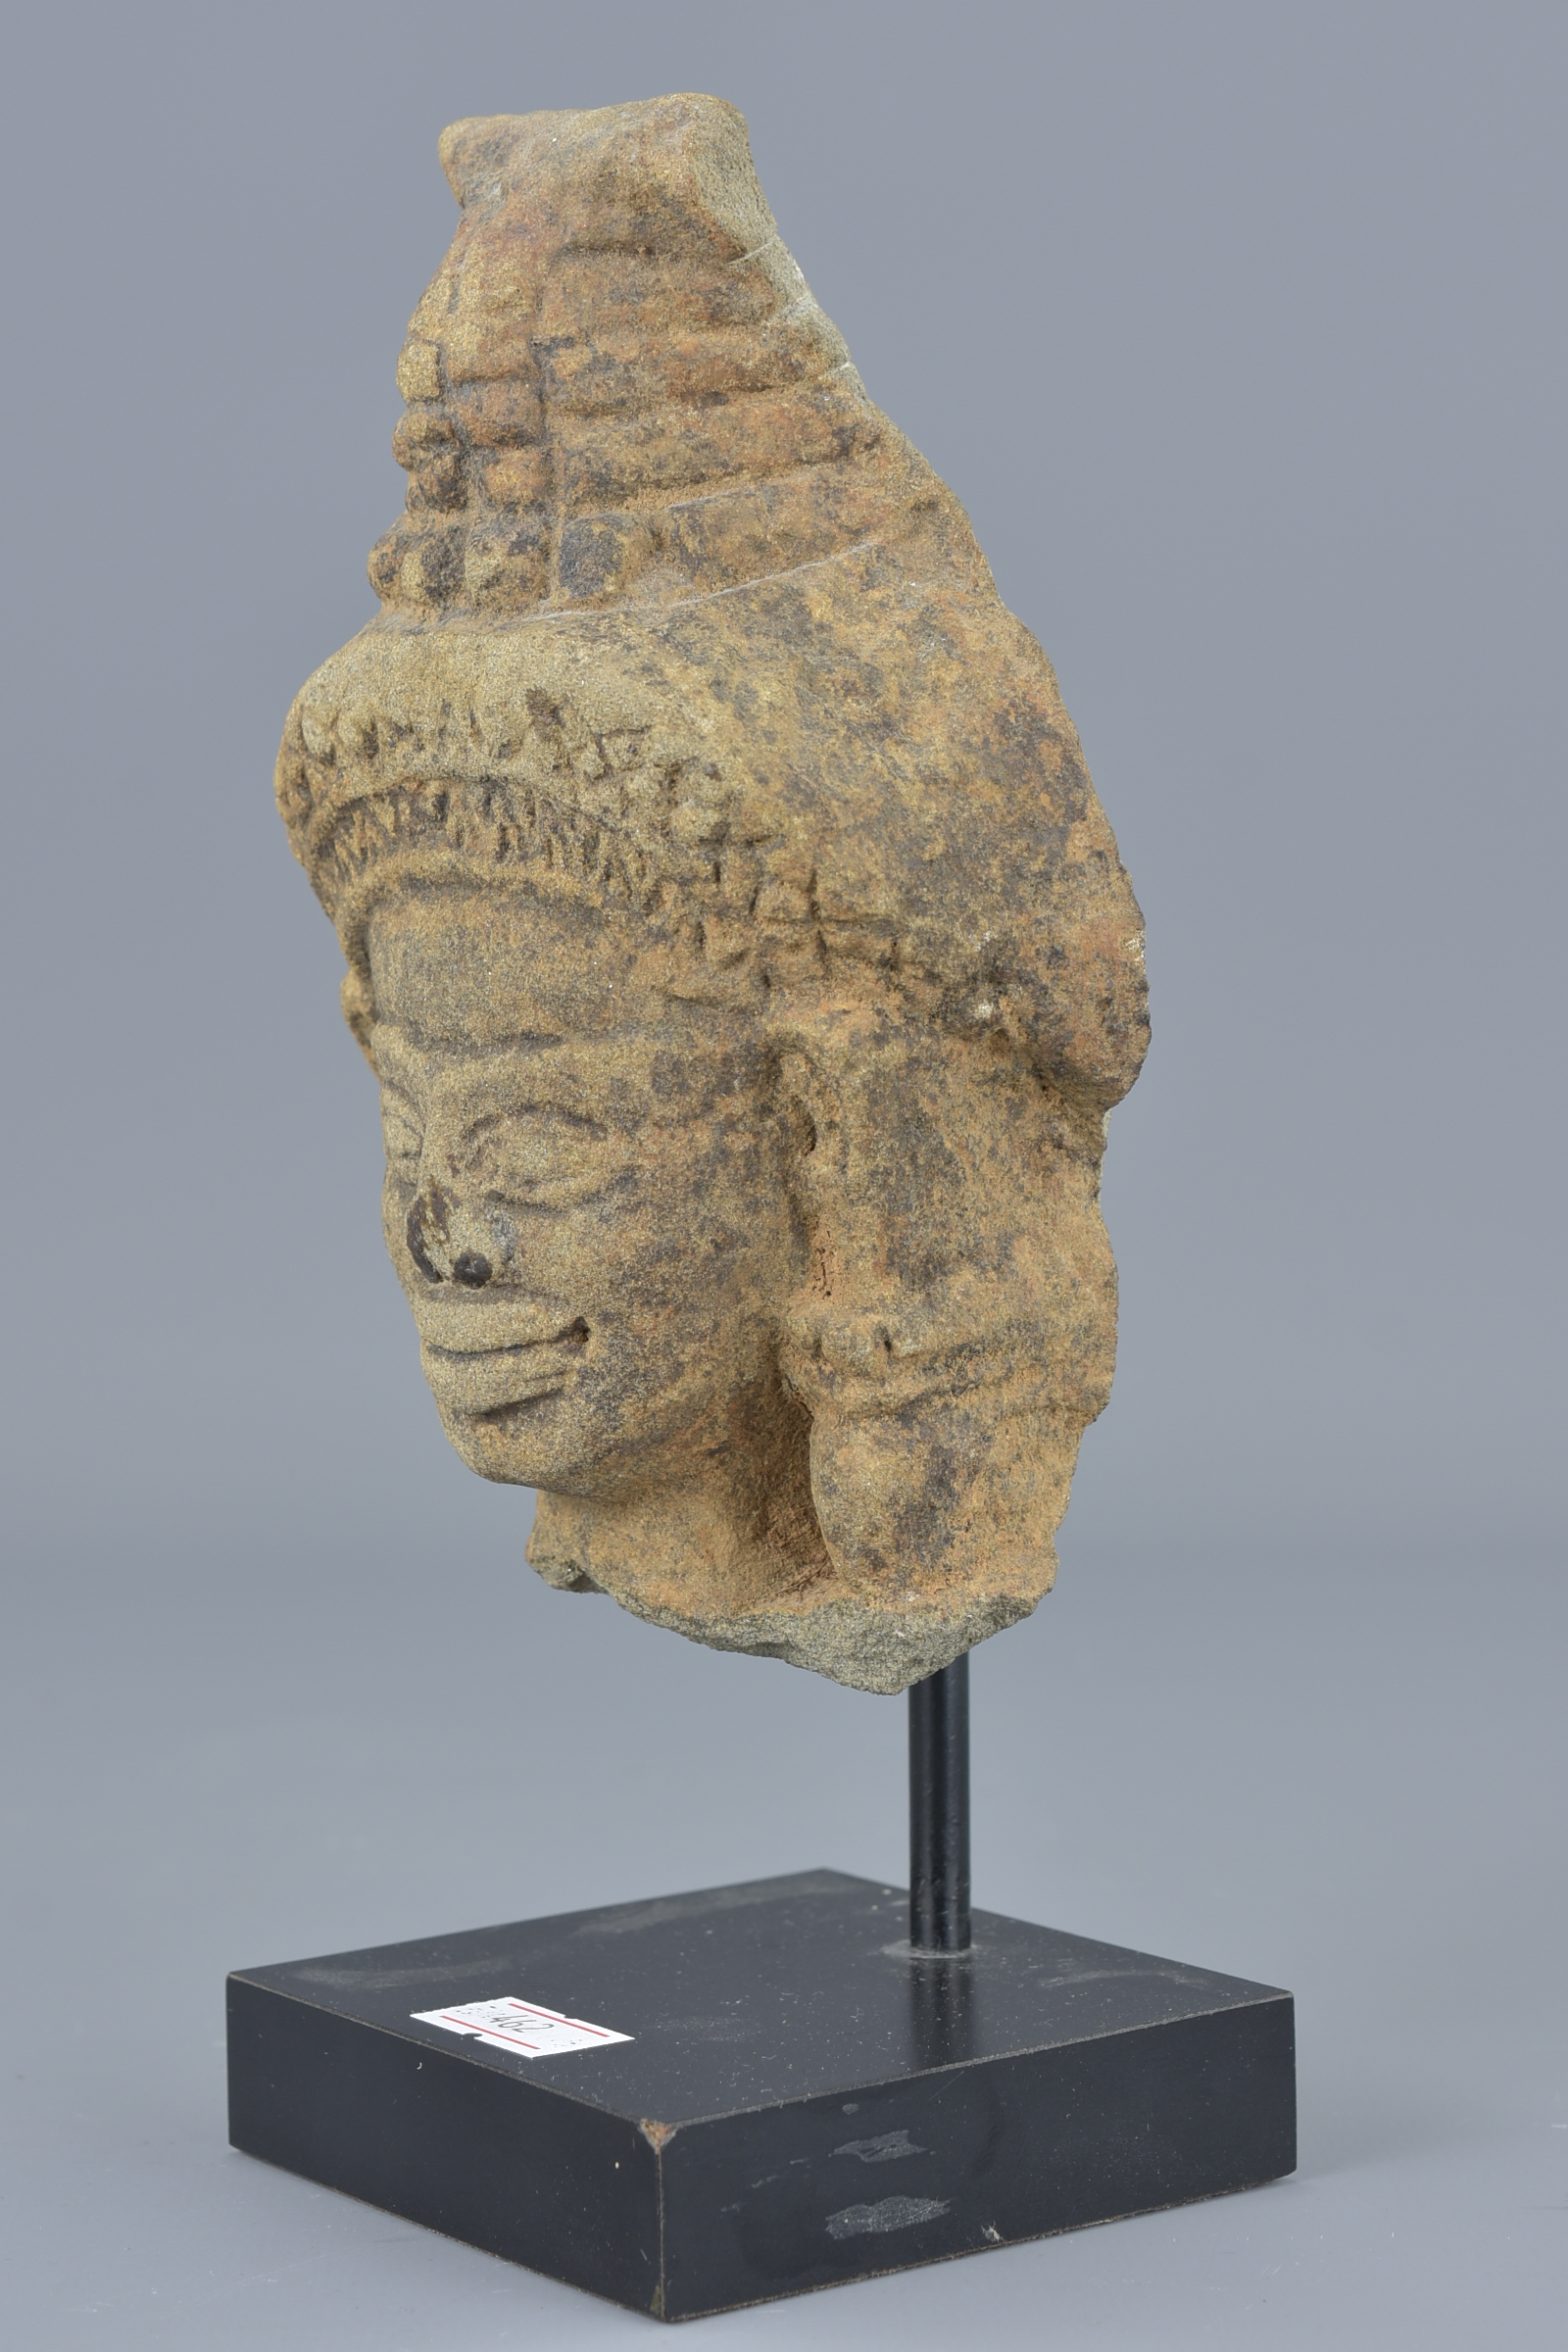 Lot 72 - A 19th century possibly Cambodian sandstone carving on display stand. Head 15cm x 9cm